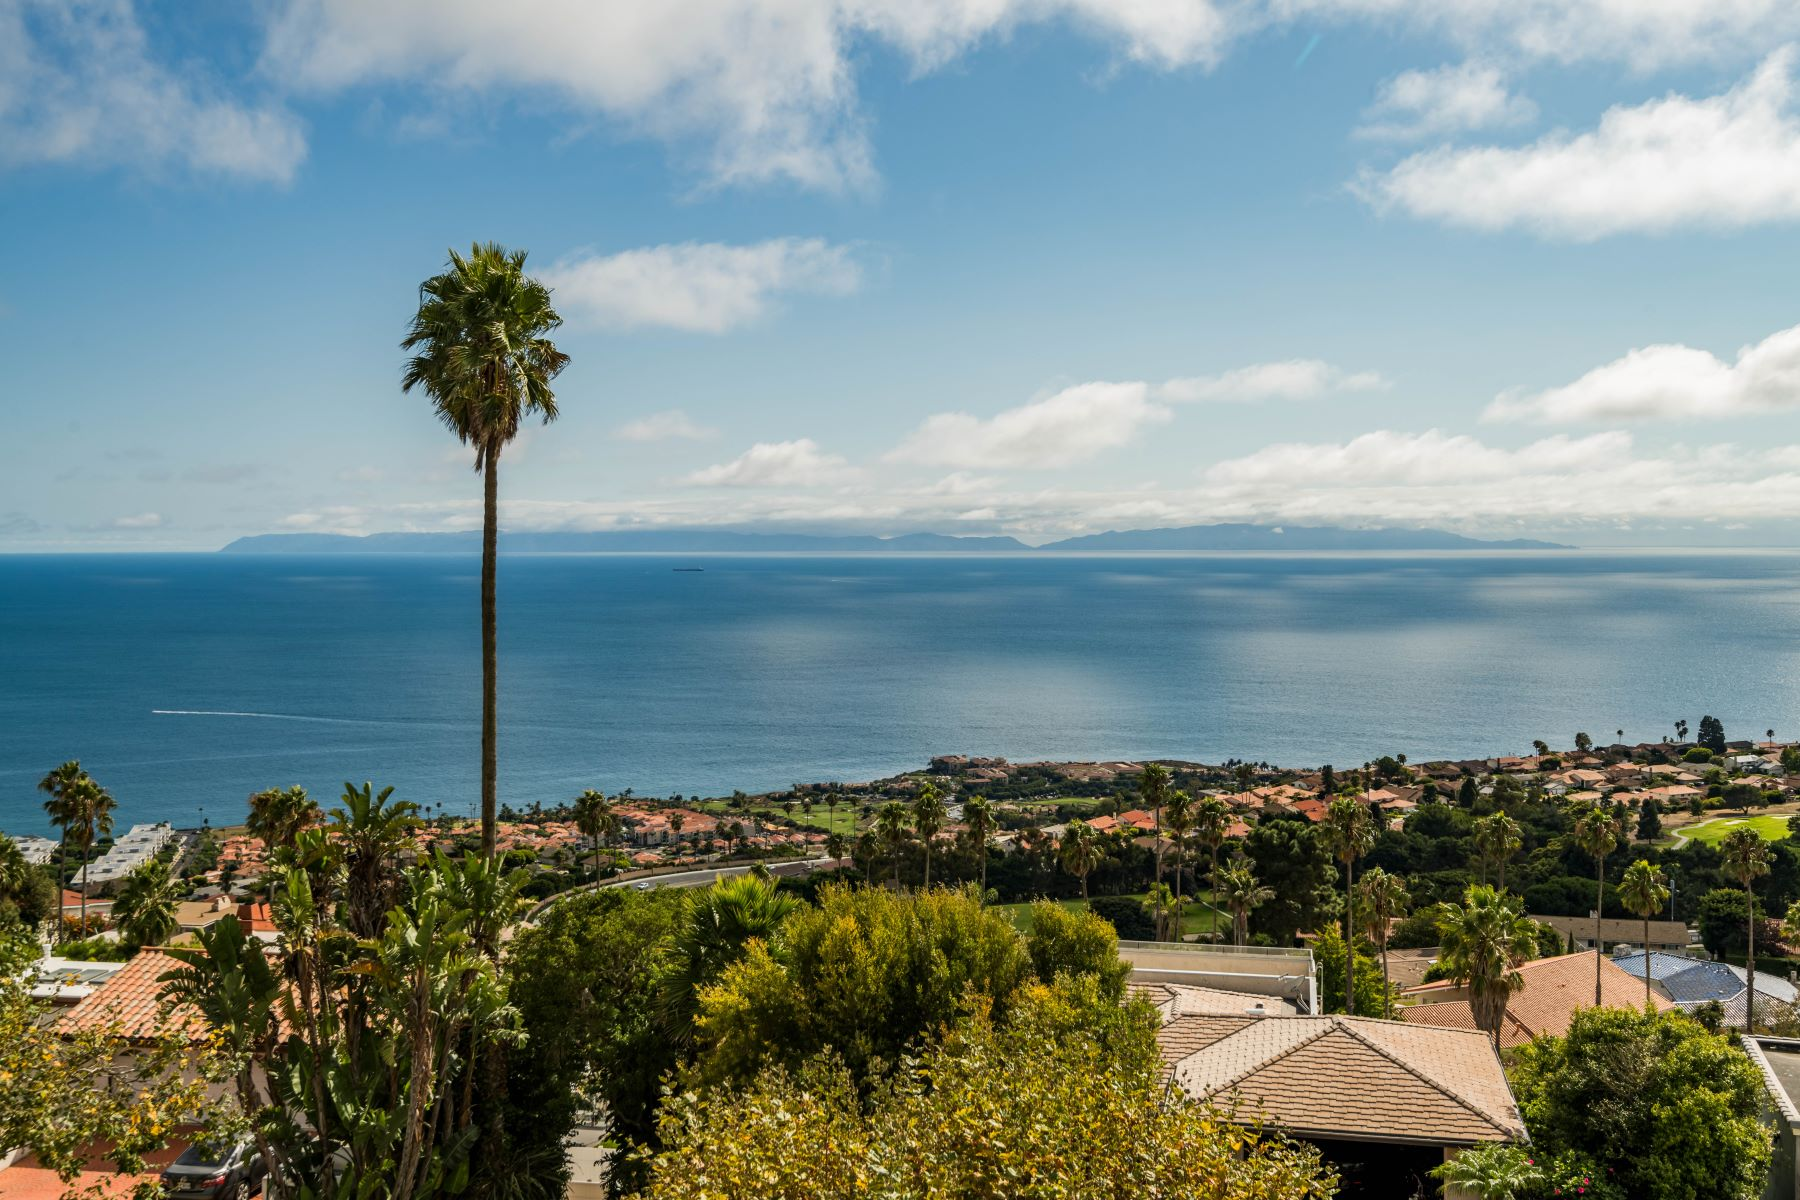 Single Family Homes for Sale at 30504 Rhone Drive, Rancho Palos Verdes, CA 90275 30504 Rhone Drive Rancho Palos Verdes, California 90275 United States